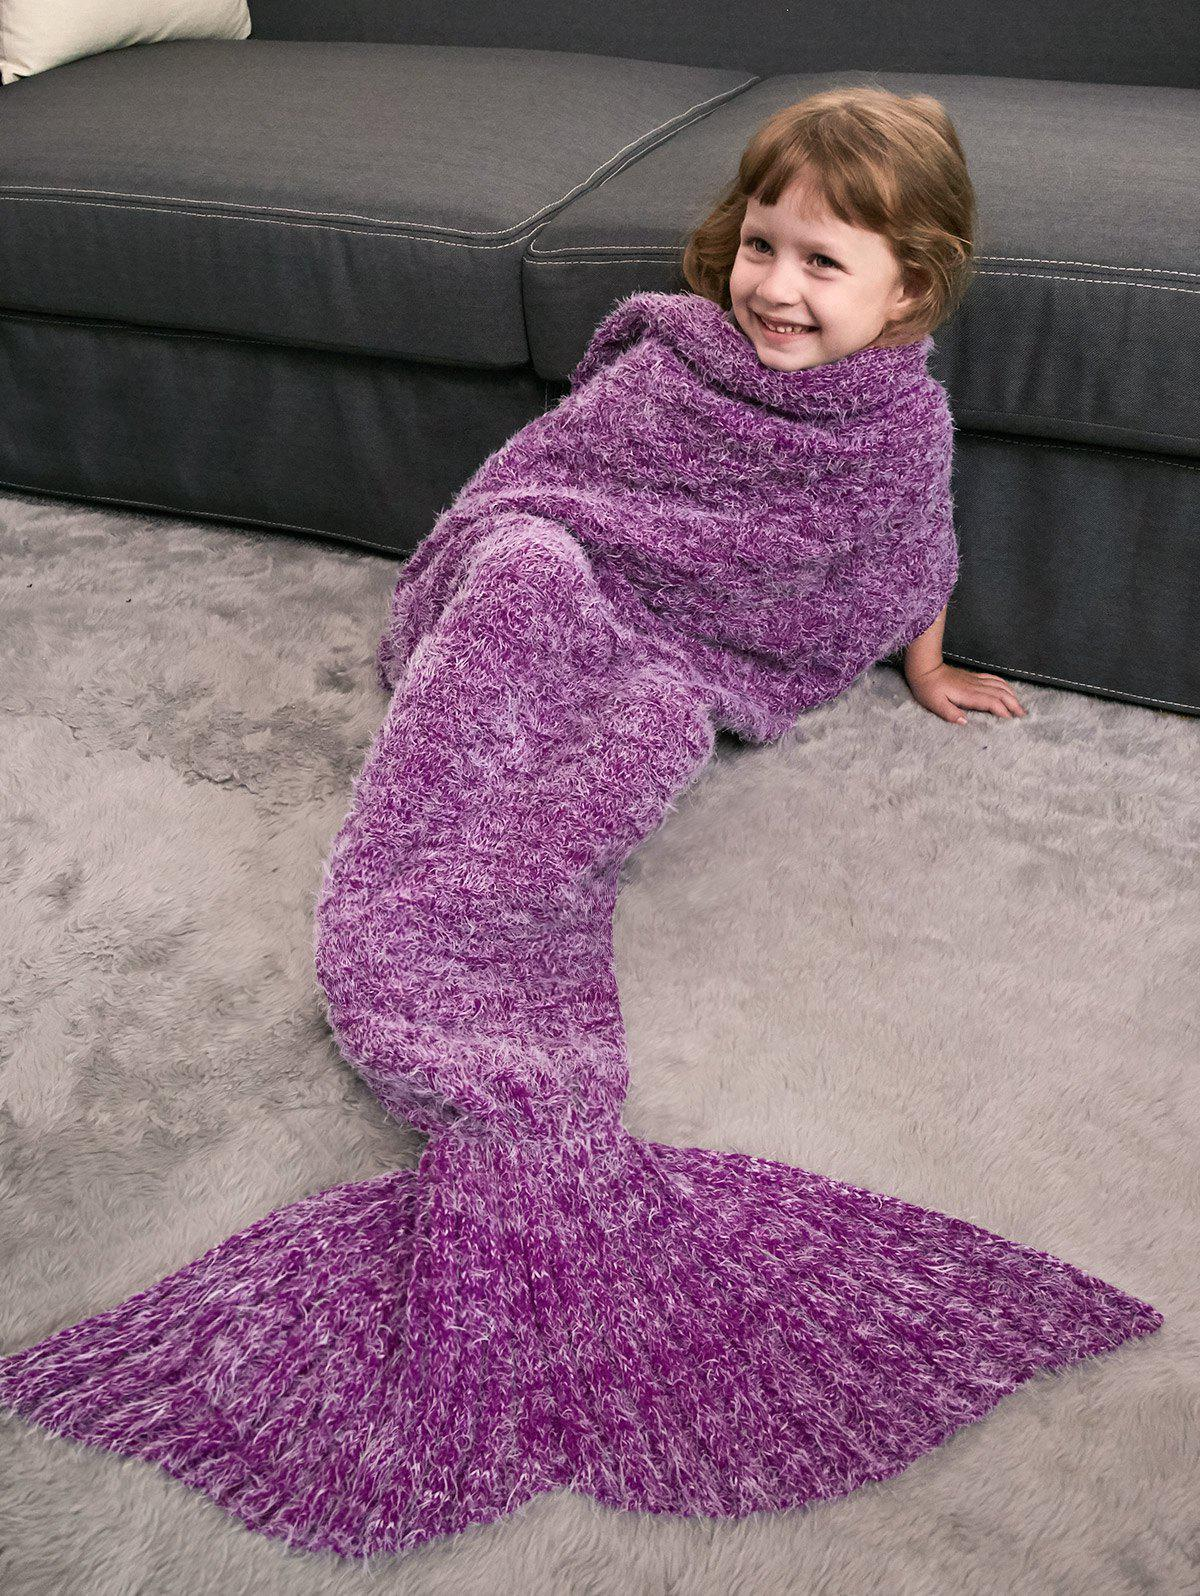 Crochet Knitted Faux Mohair Mermaid Blanket Throw For Kids - VIOLET ROSE